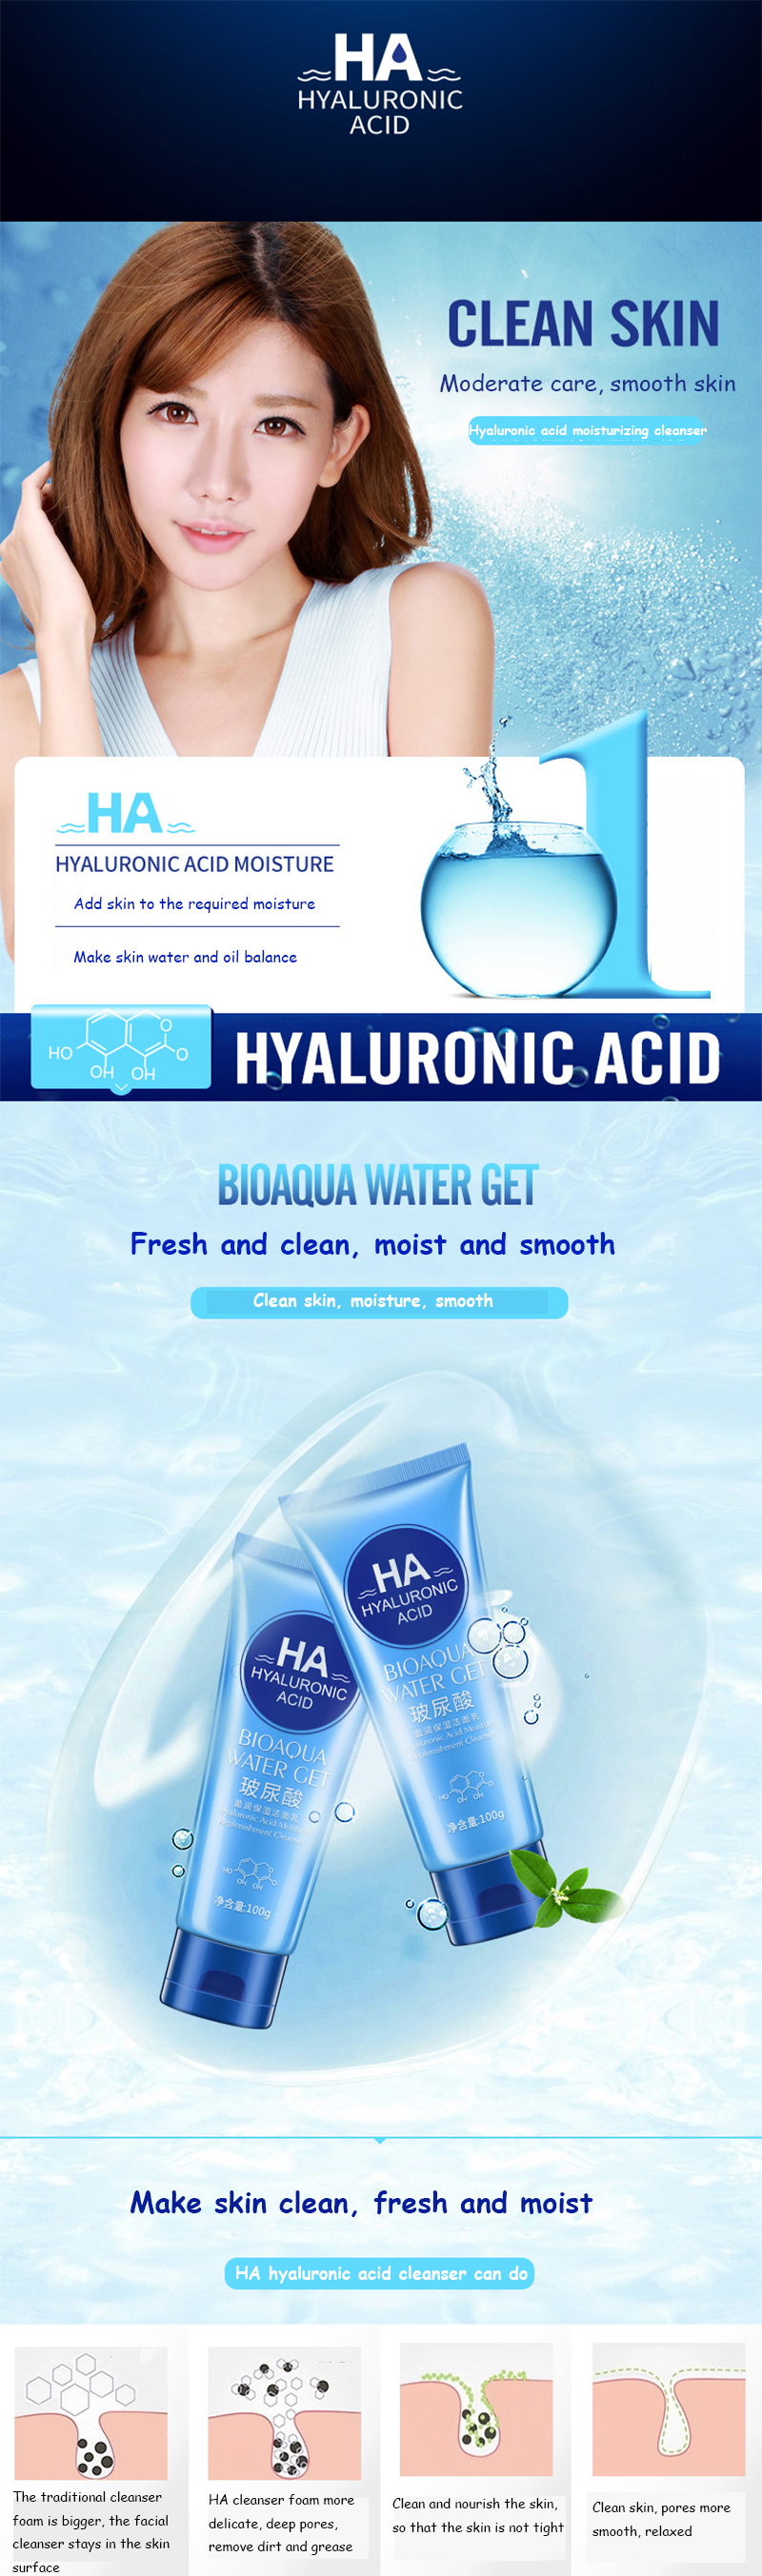 BIOAQUA Brand Hyaluronic Acid Facial Pore Cleanser Moisturizing Deep Cleaning Washing Whitening Hydrating Tender Face Skin Care 10